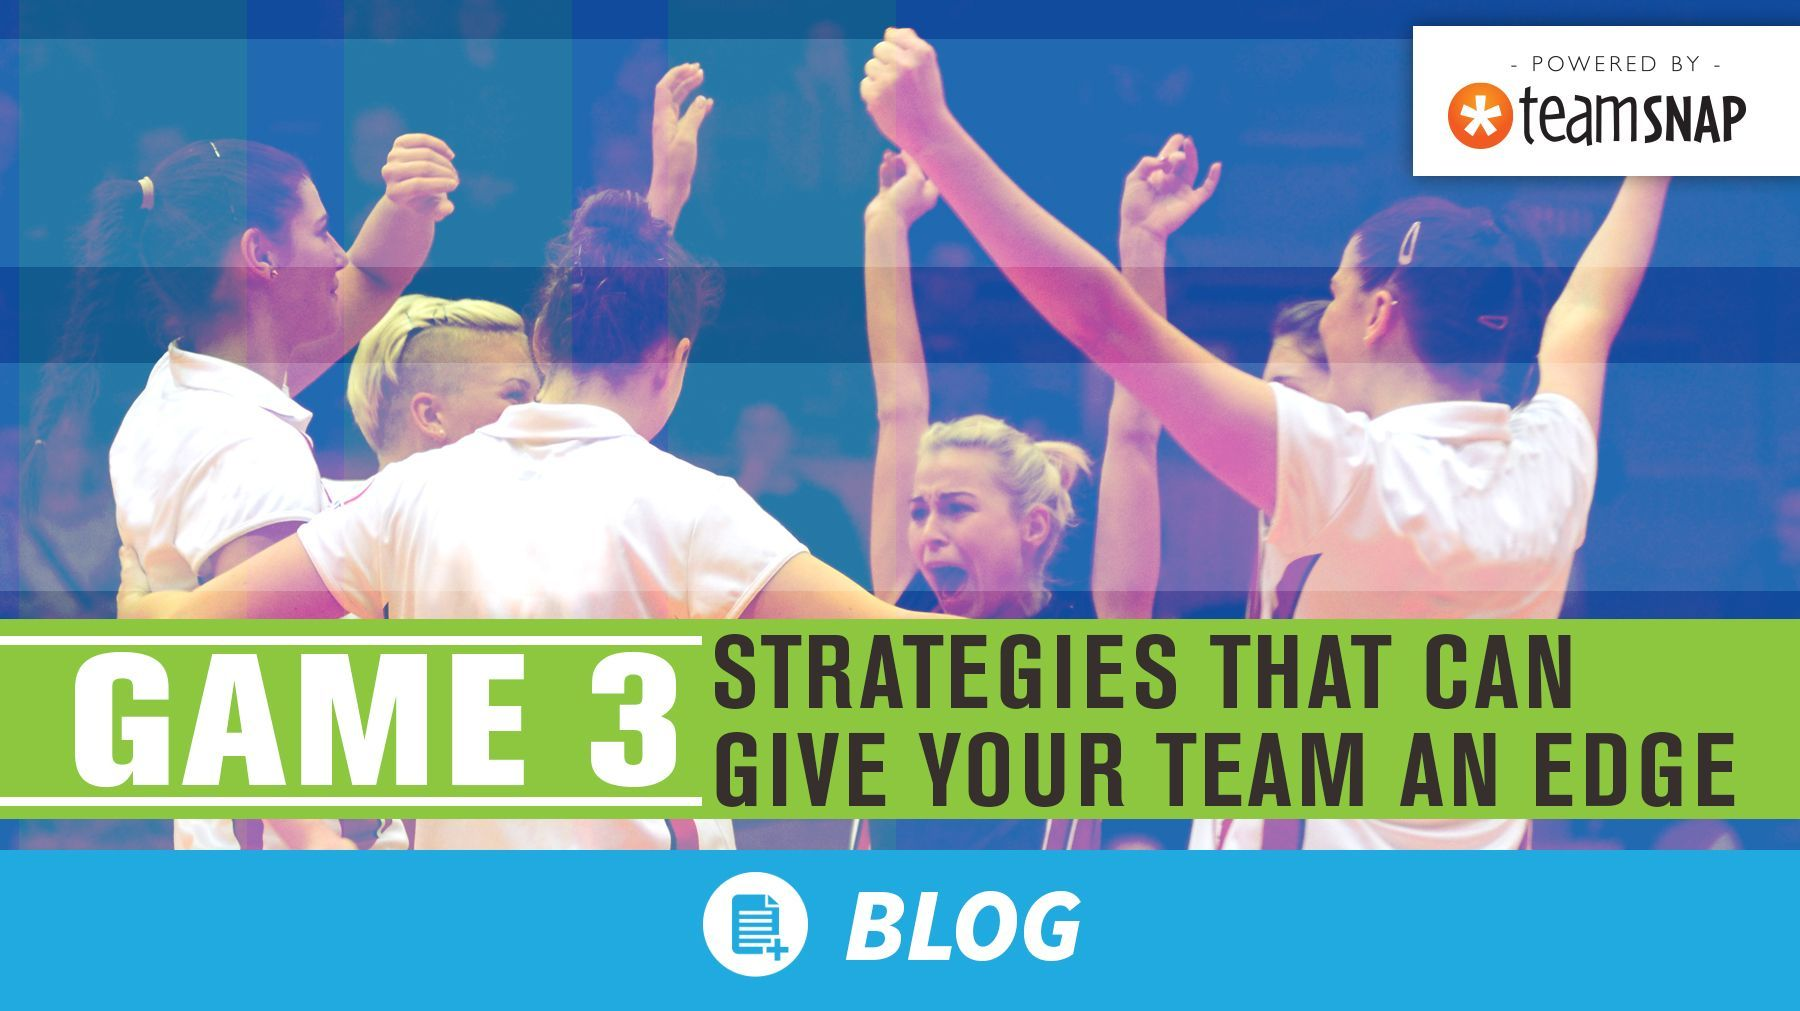 Game 3 strategies that can give your team an edge